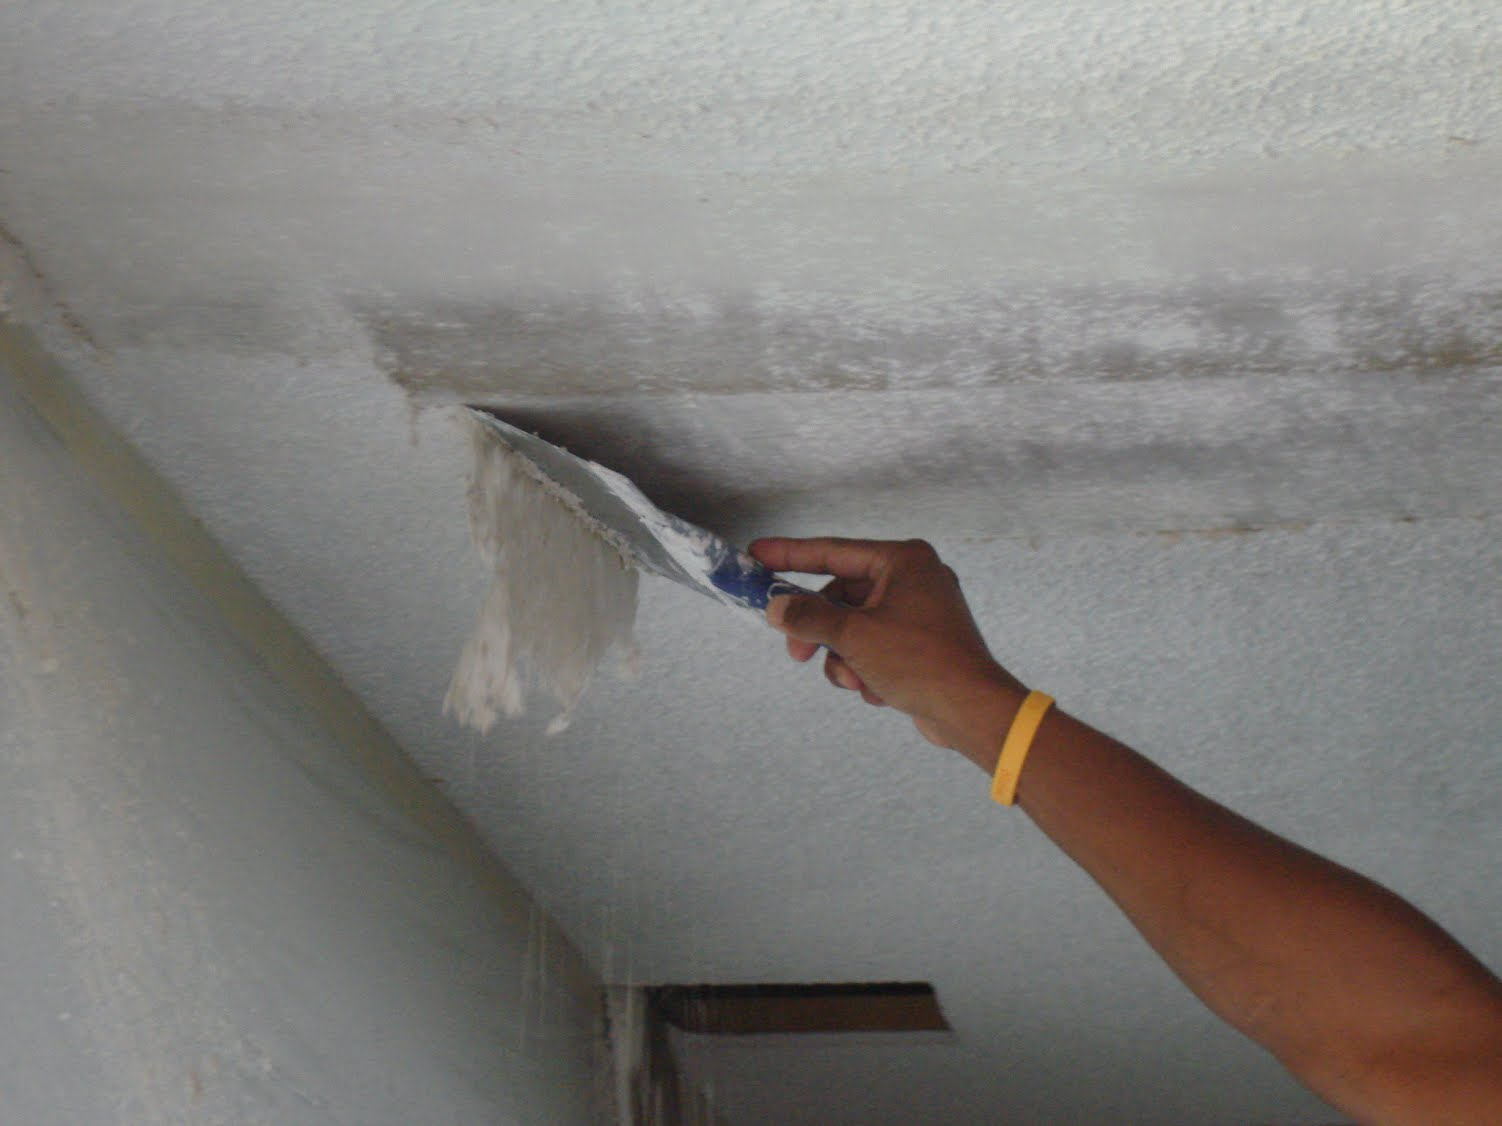 1320 Carefree Cove Dr West Palm Beach Fl 33415 561 719 5001 Drywall Has Provided Popcorn Ceiling Removal And Acoustic